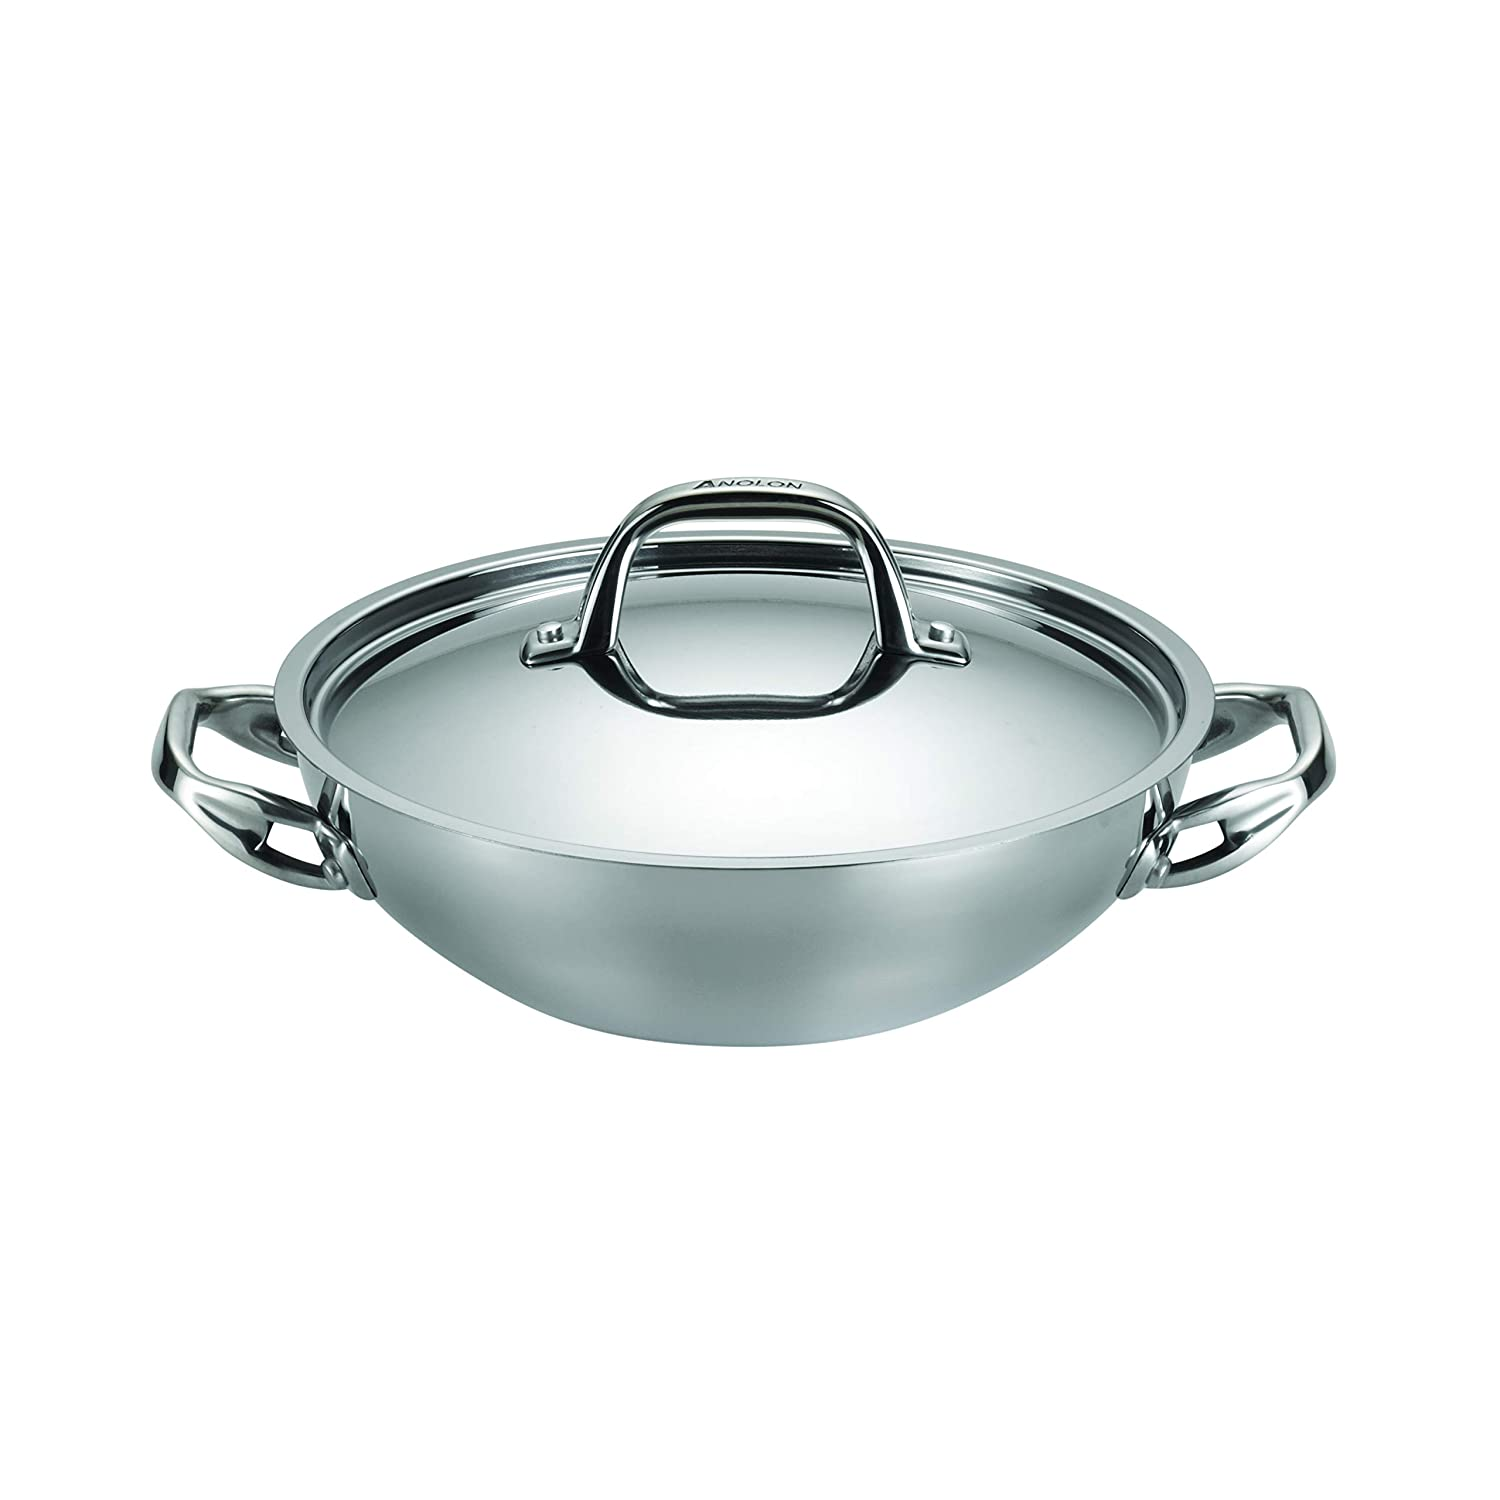 Anolon 30823 Cookware Covered Braiser Small Stainless Steel